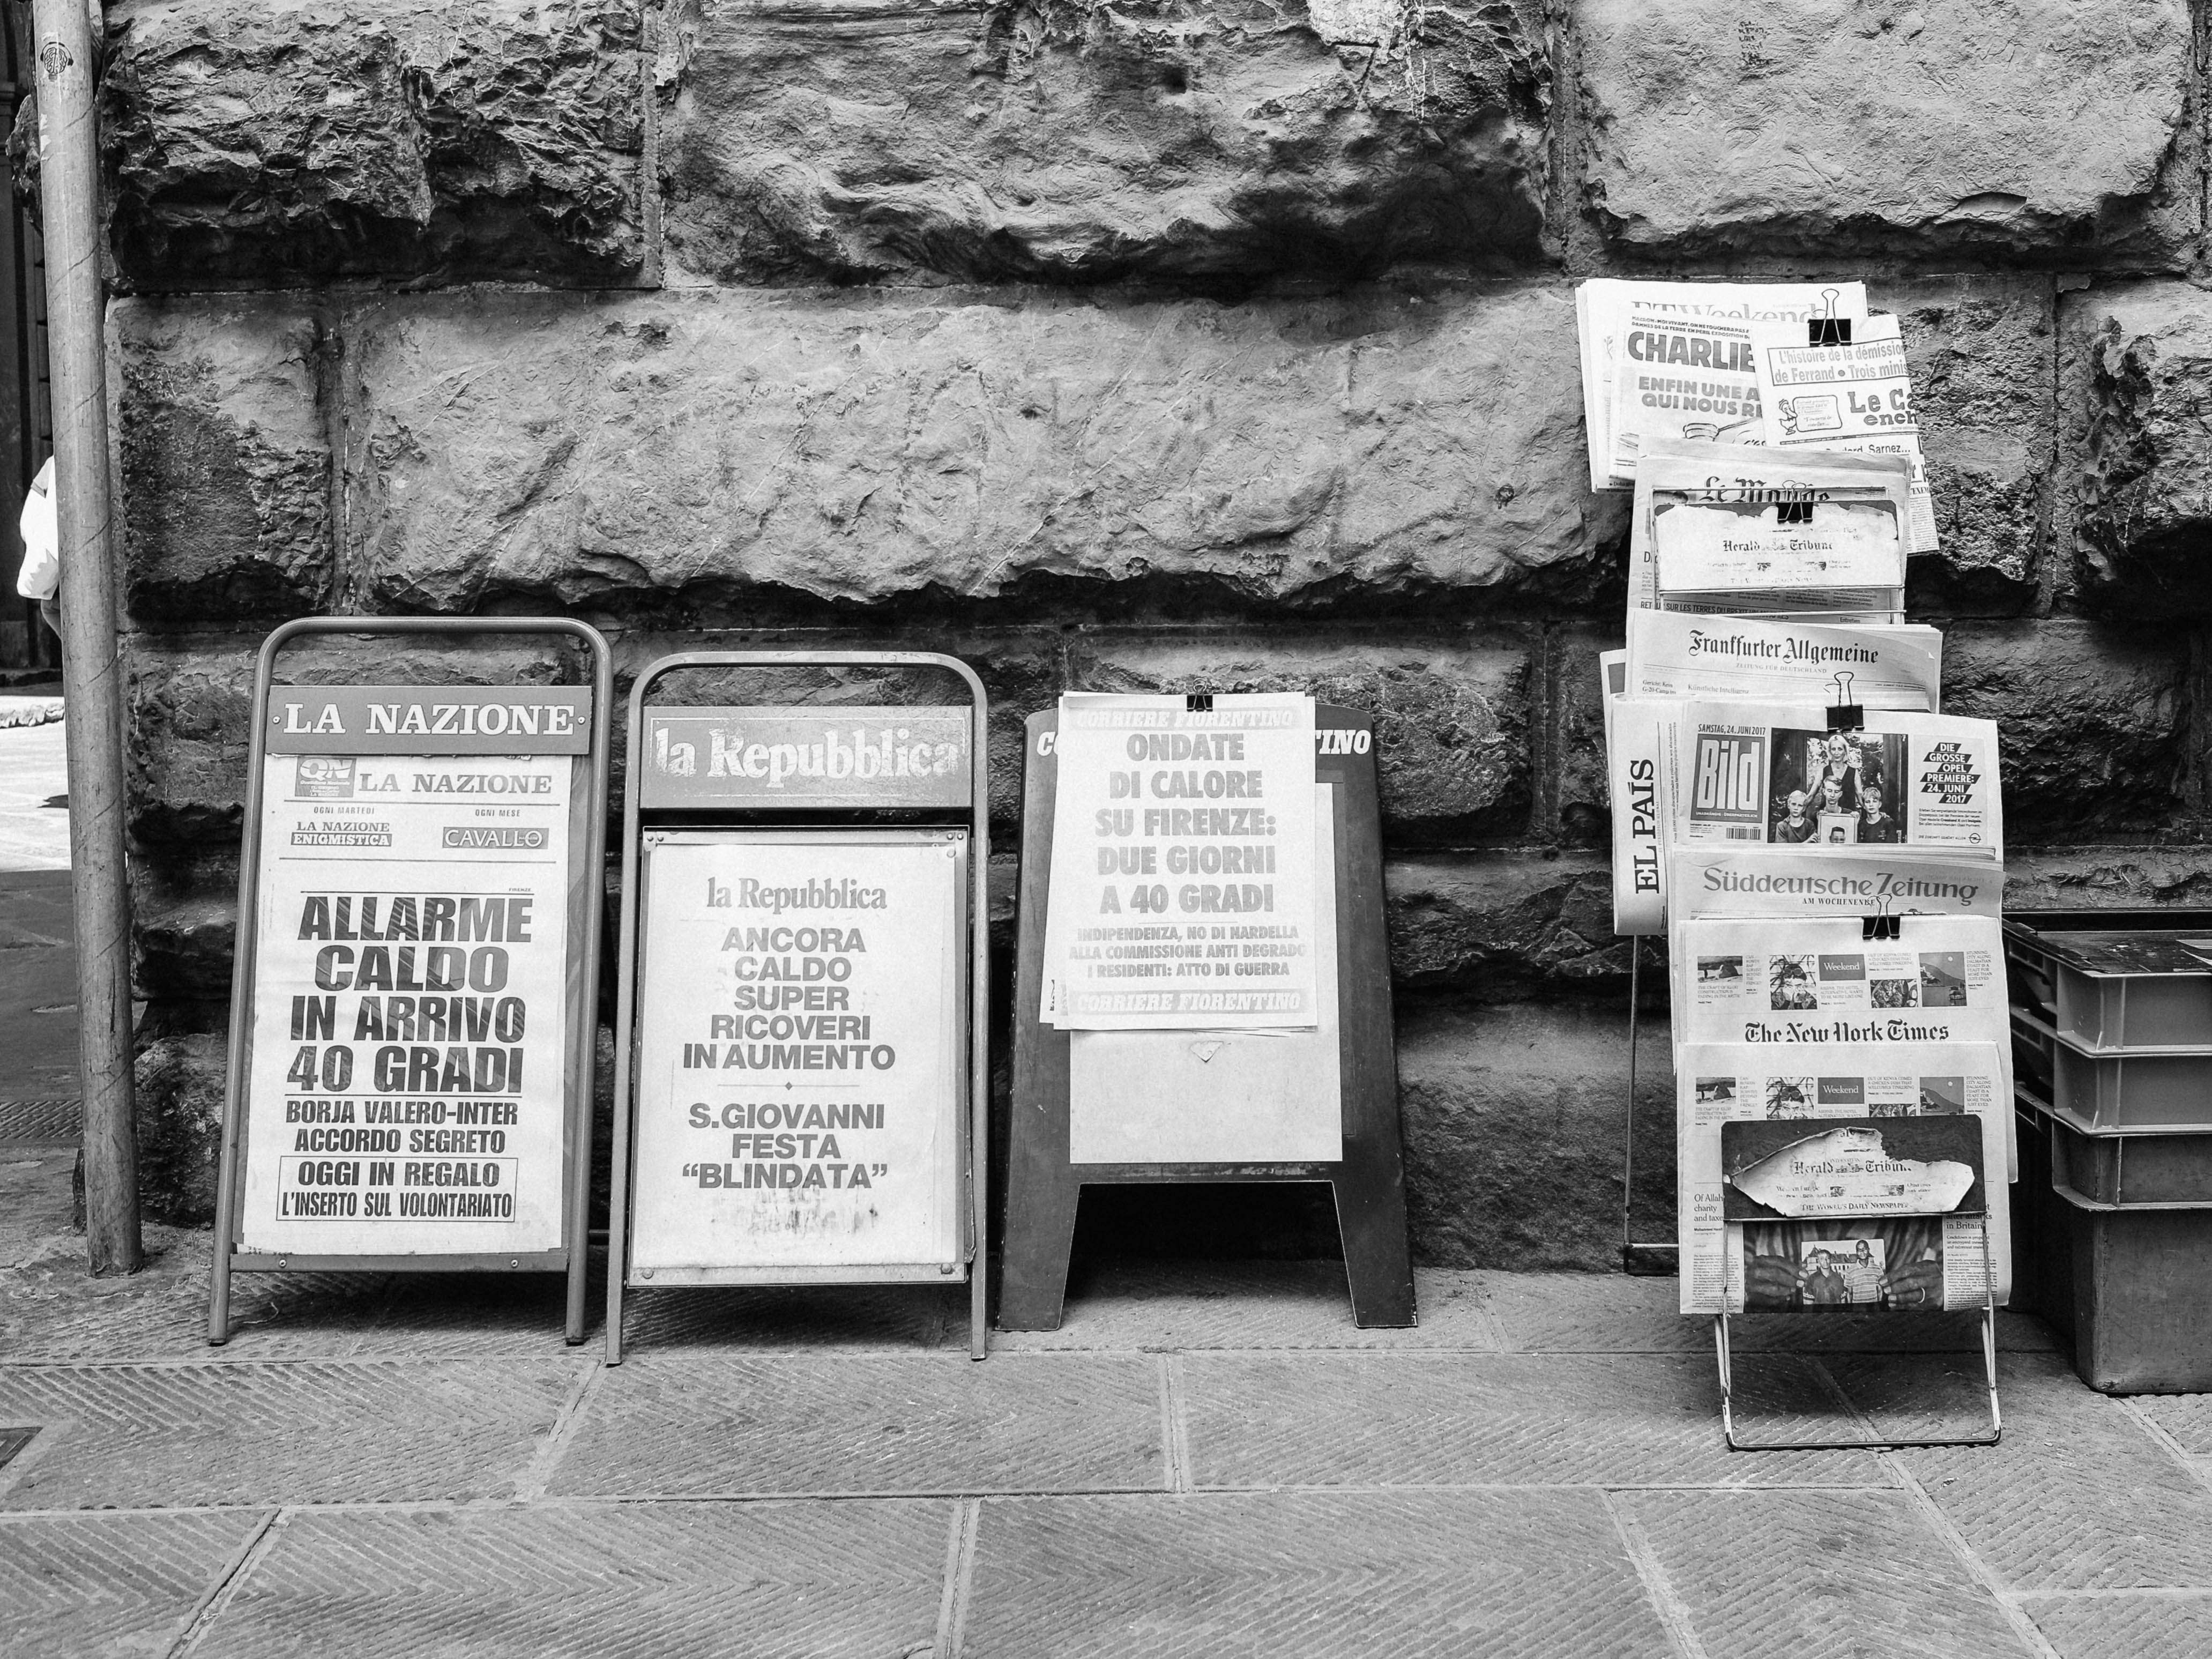 newspapers, signs, magazines on racks and displays